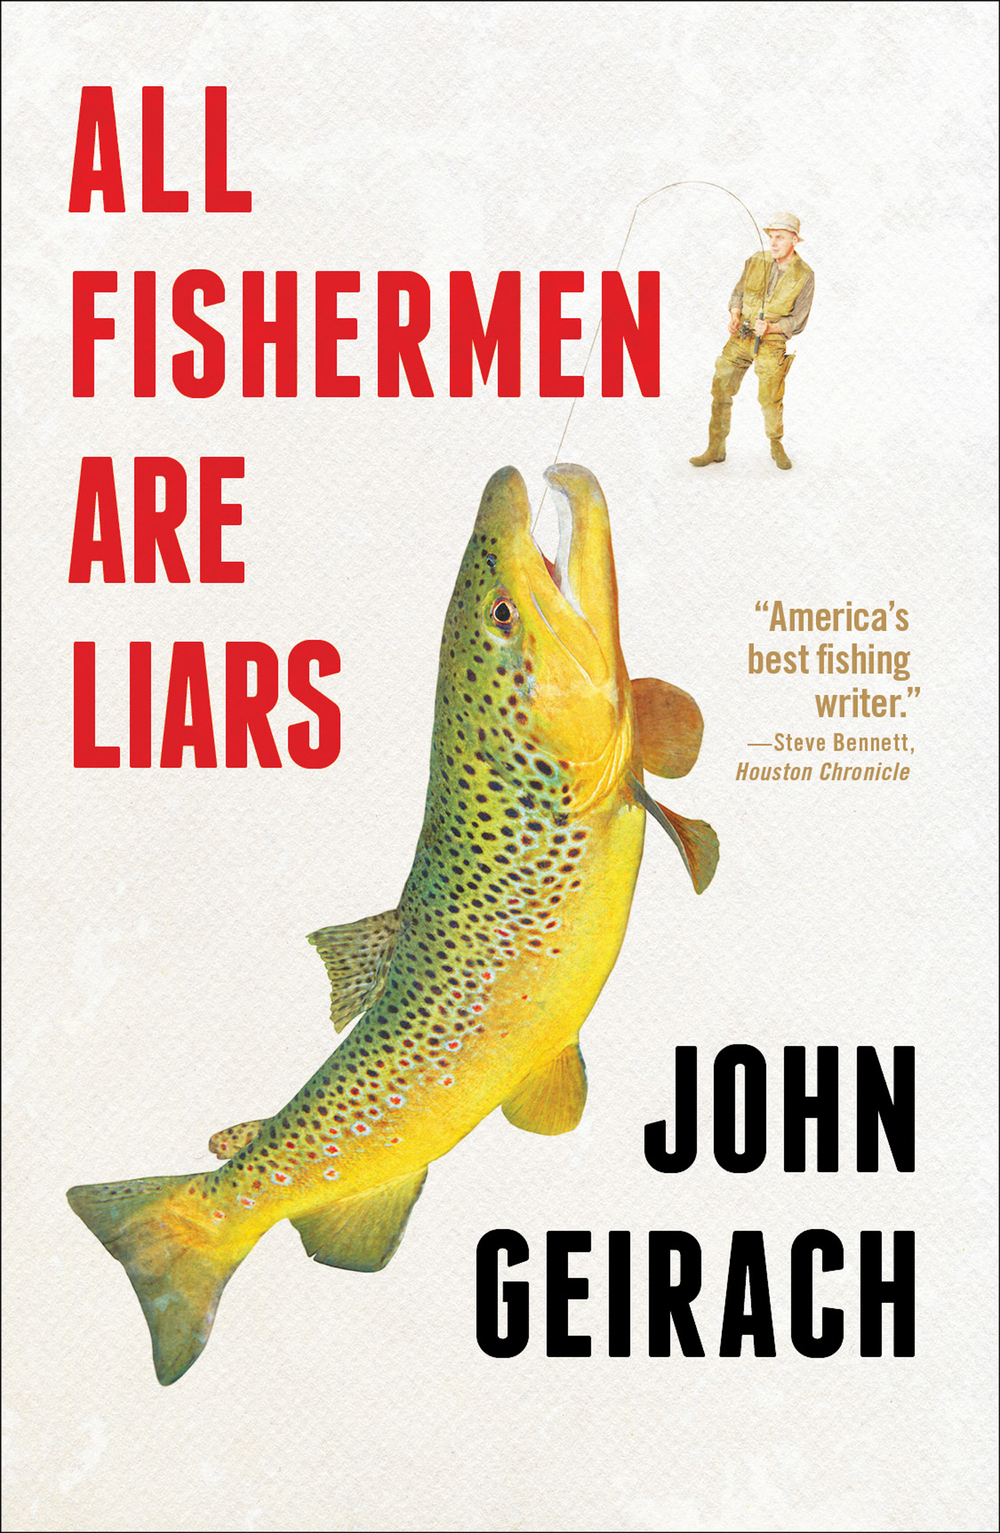 ALL-FISHERMEN-ARE-LIARS-comp2-ss6.jpg